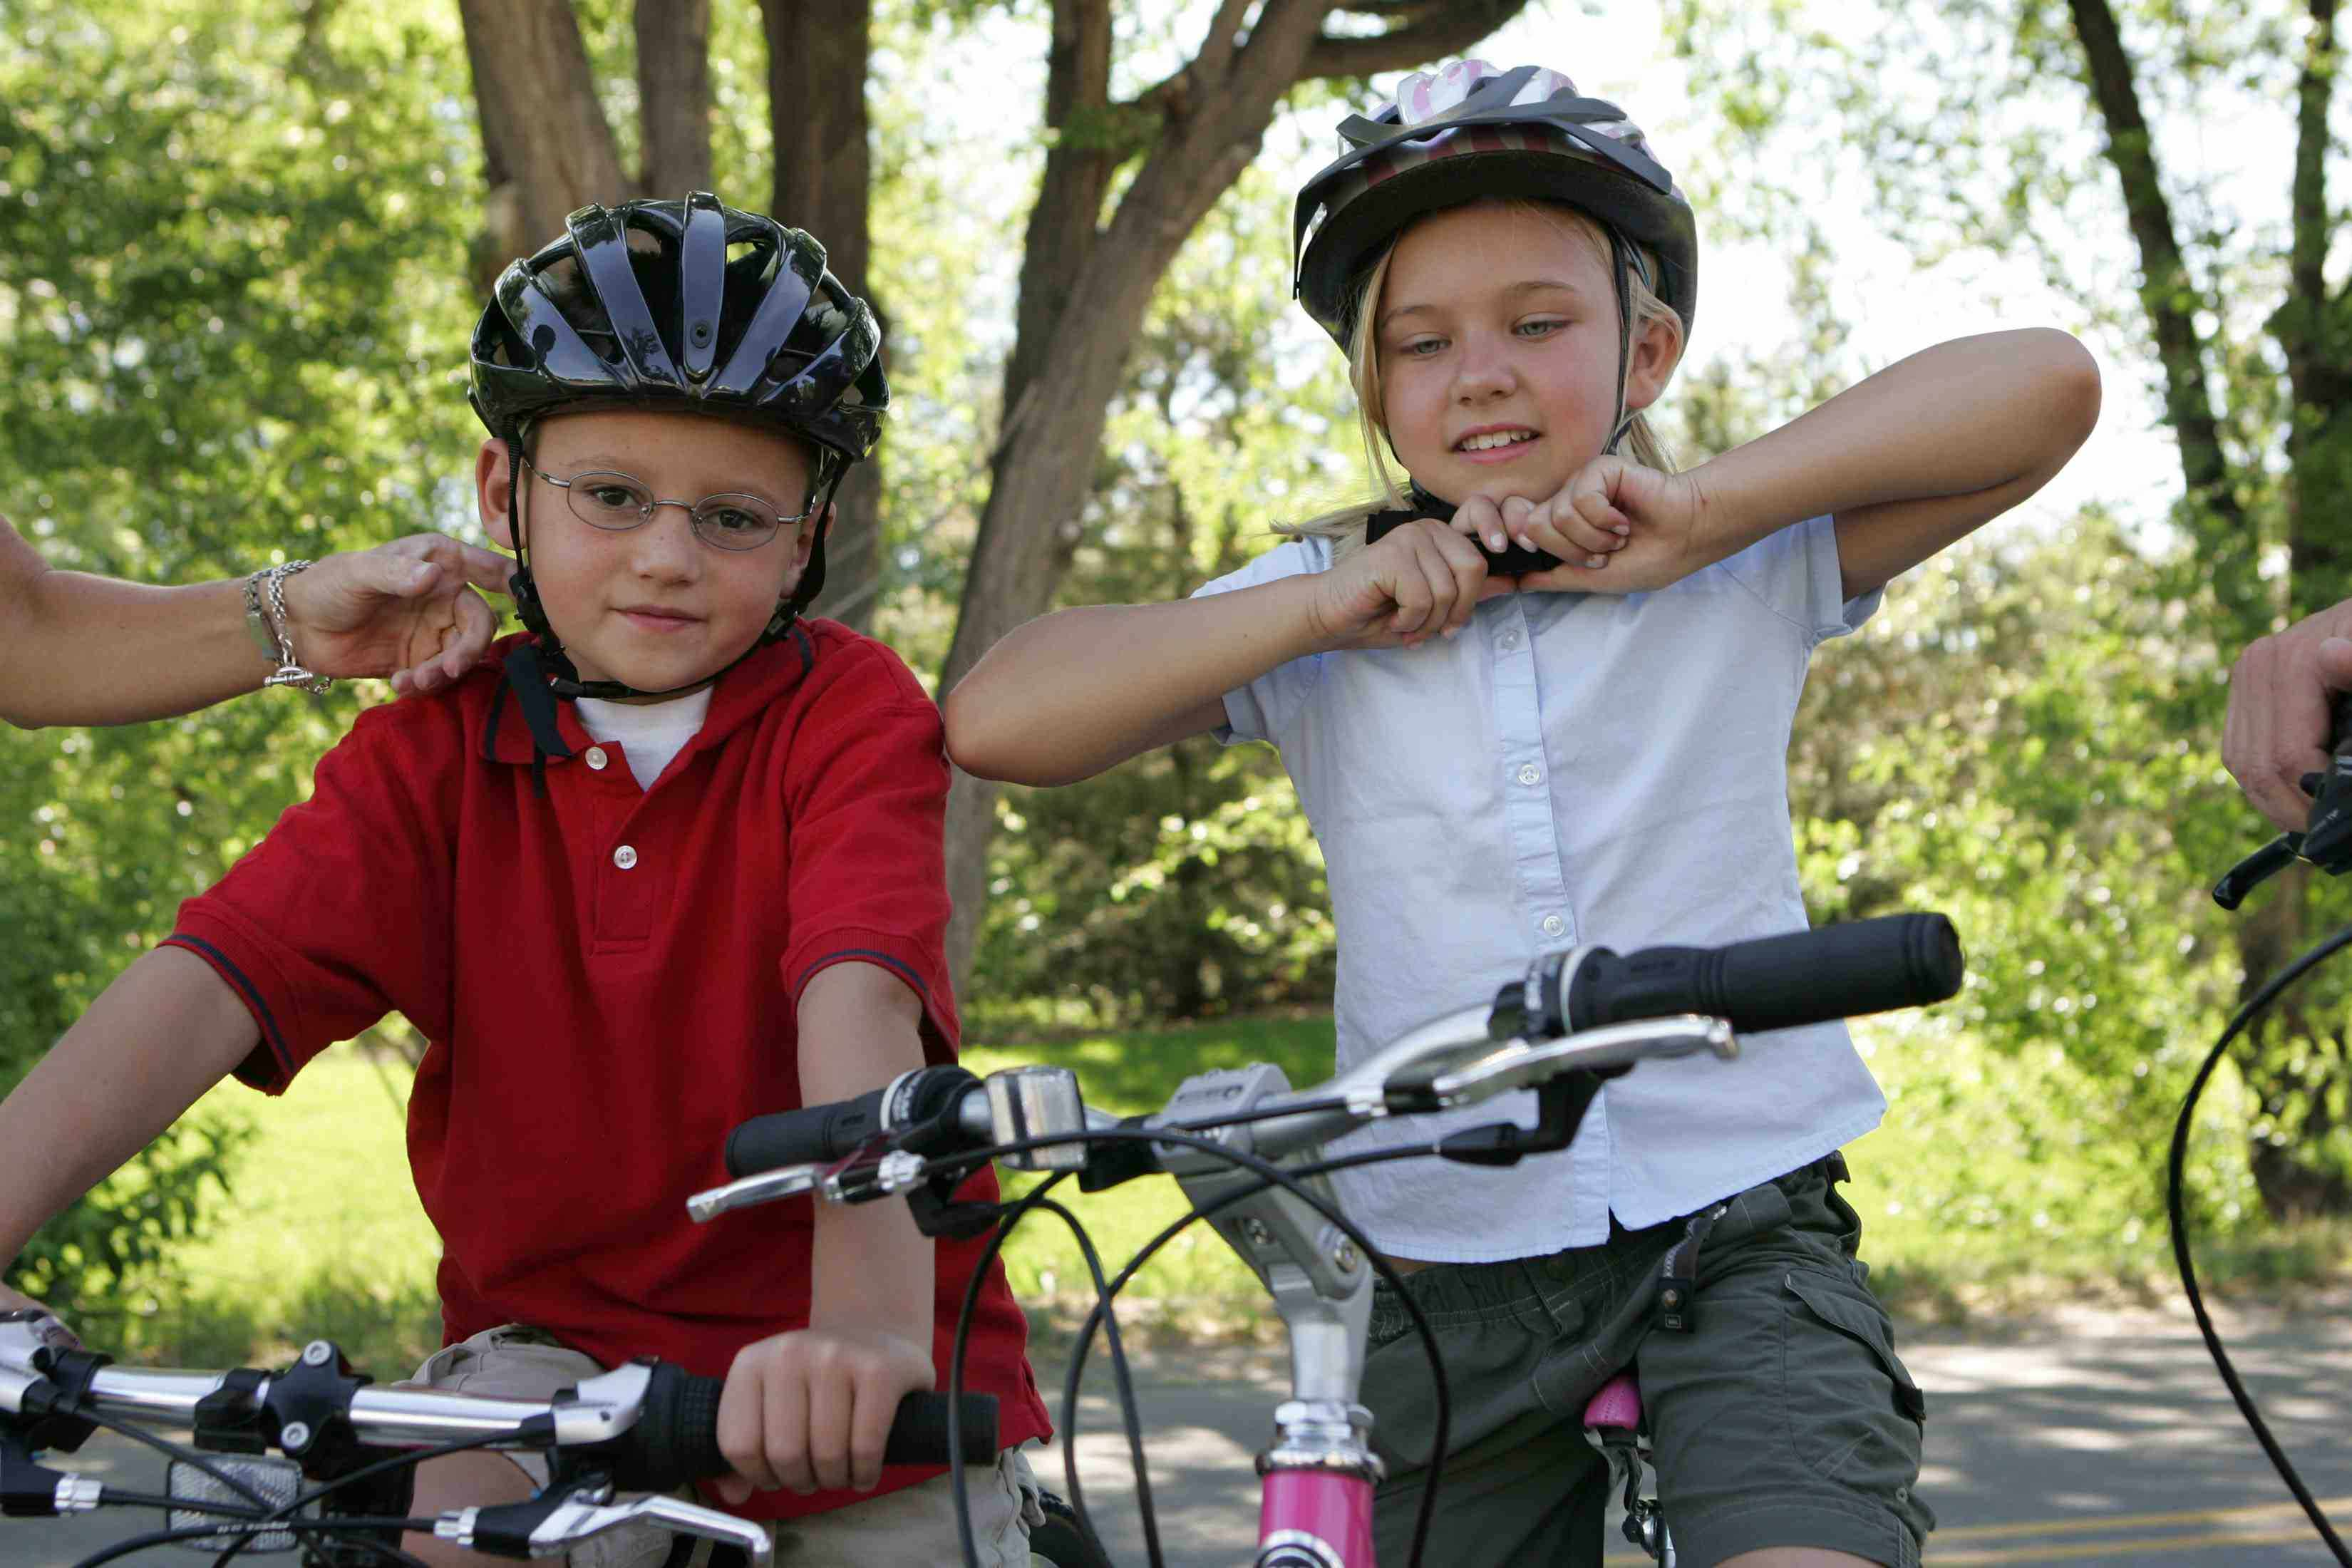 Sustrans has seen a noticeable increase in school-age kids riding their bikes.